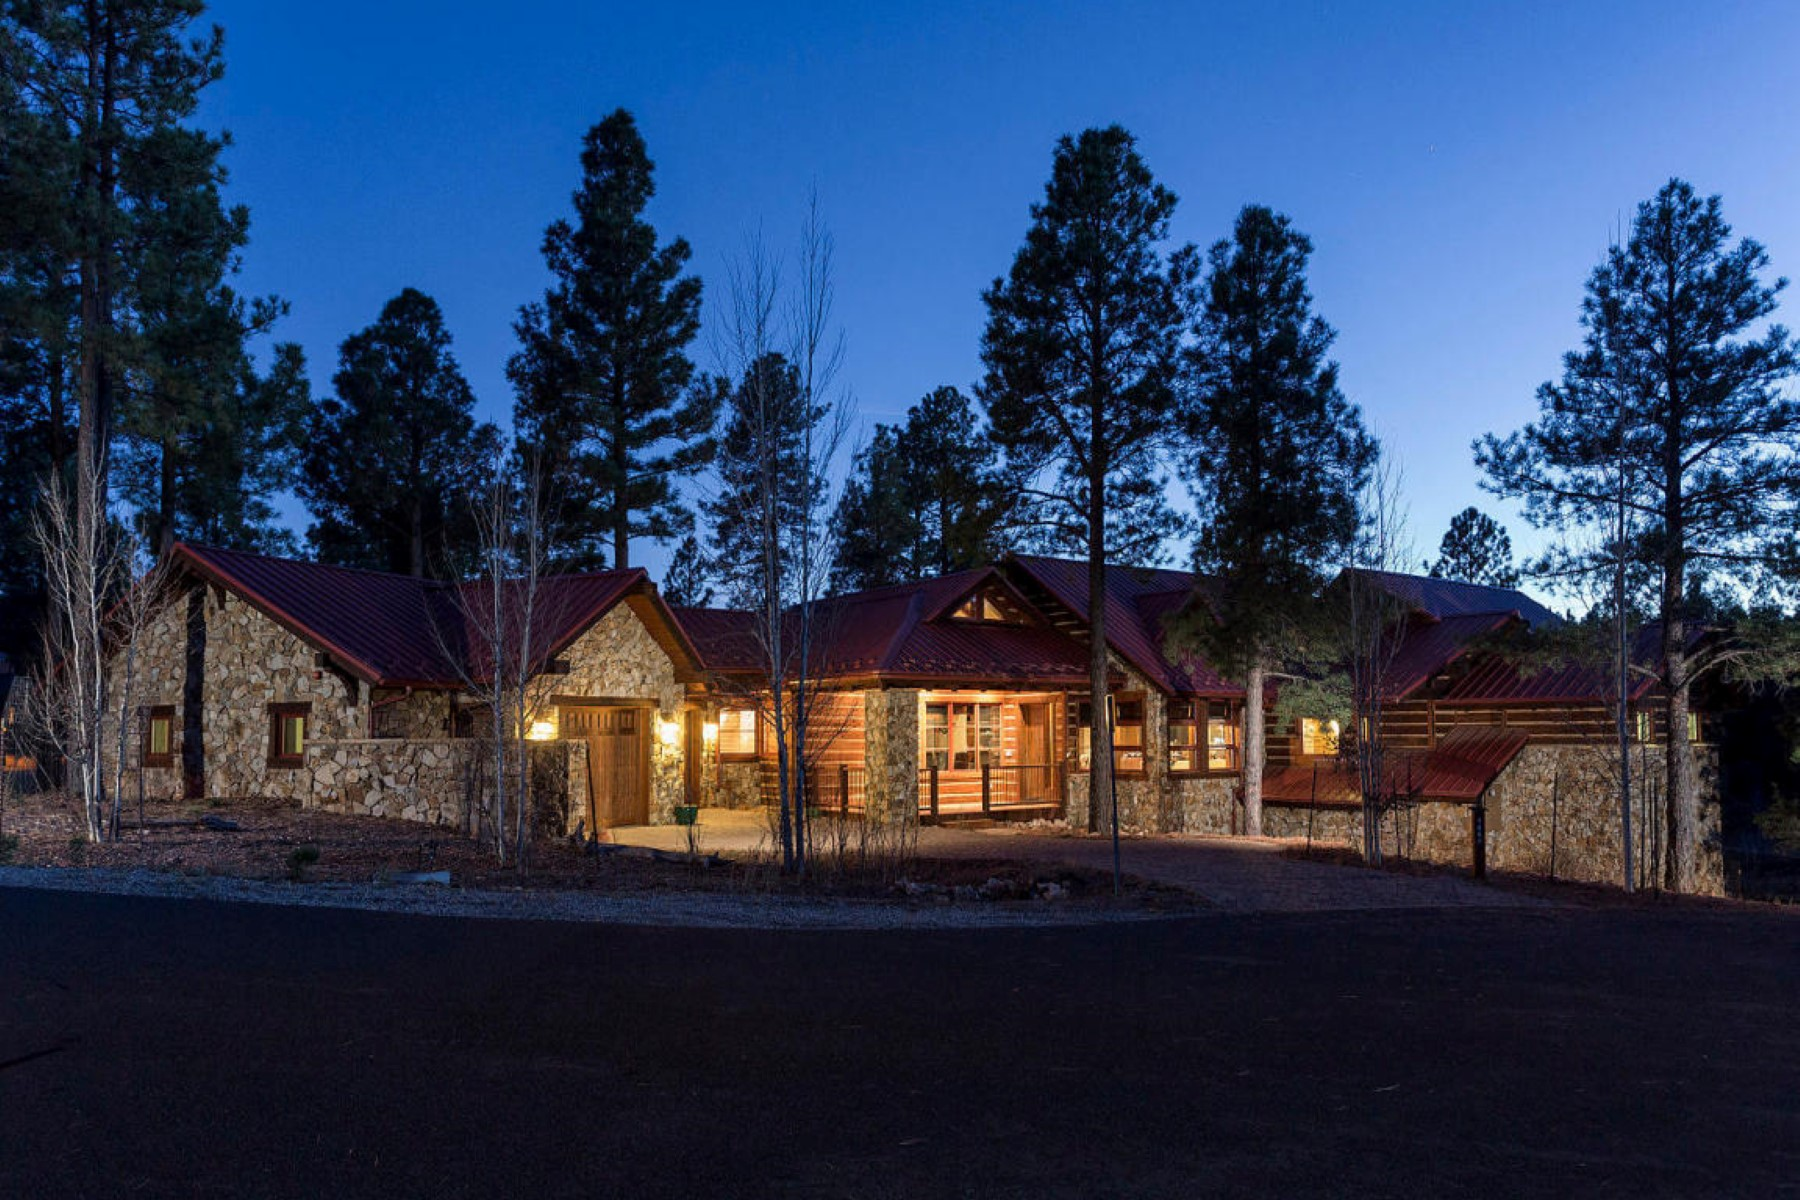 Maison unifamiliale pour l Vente à Incredible Luxury Mountain Home On a Prime Cul-de-Sac in Exclusive Pine Canyon 1887 E Marengo Court Flagstaff, Arizona, 86005 États-Unis